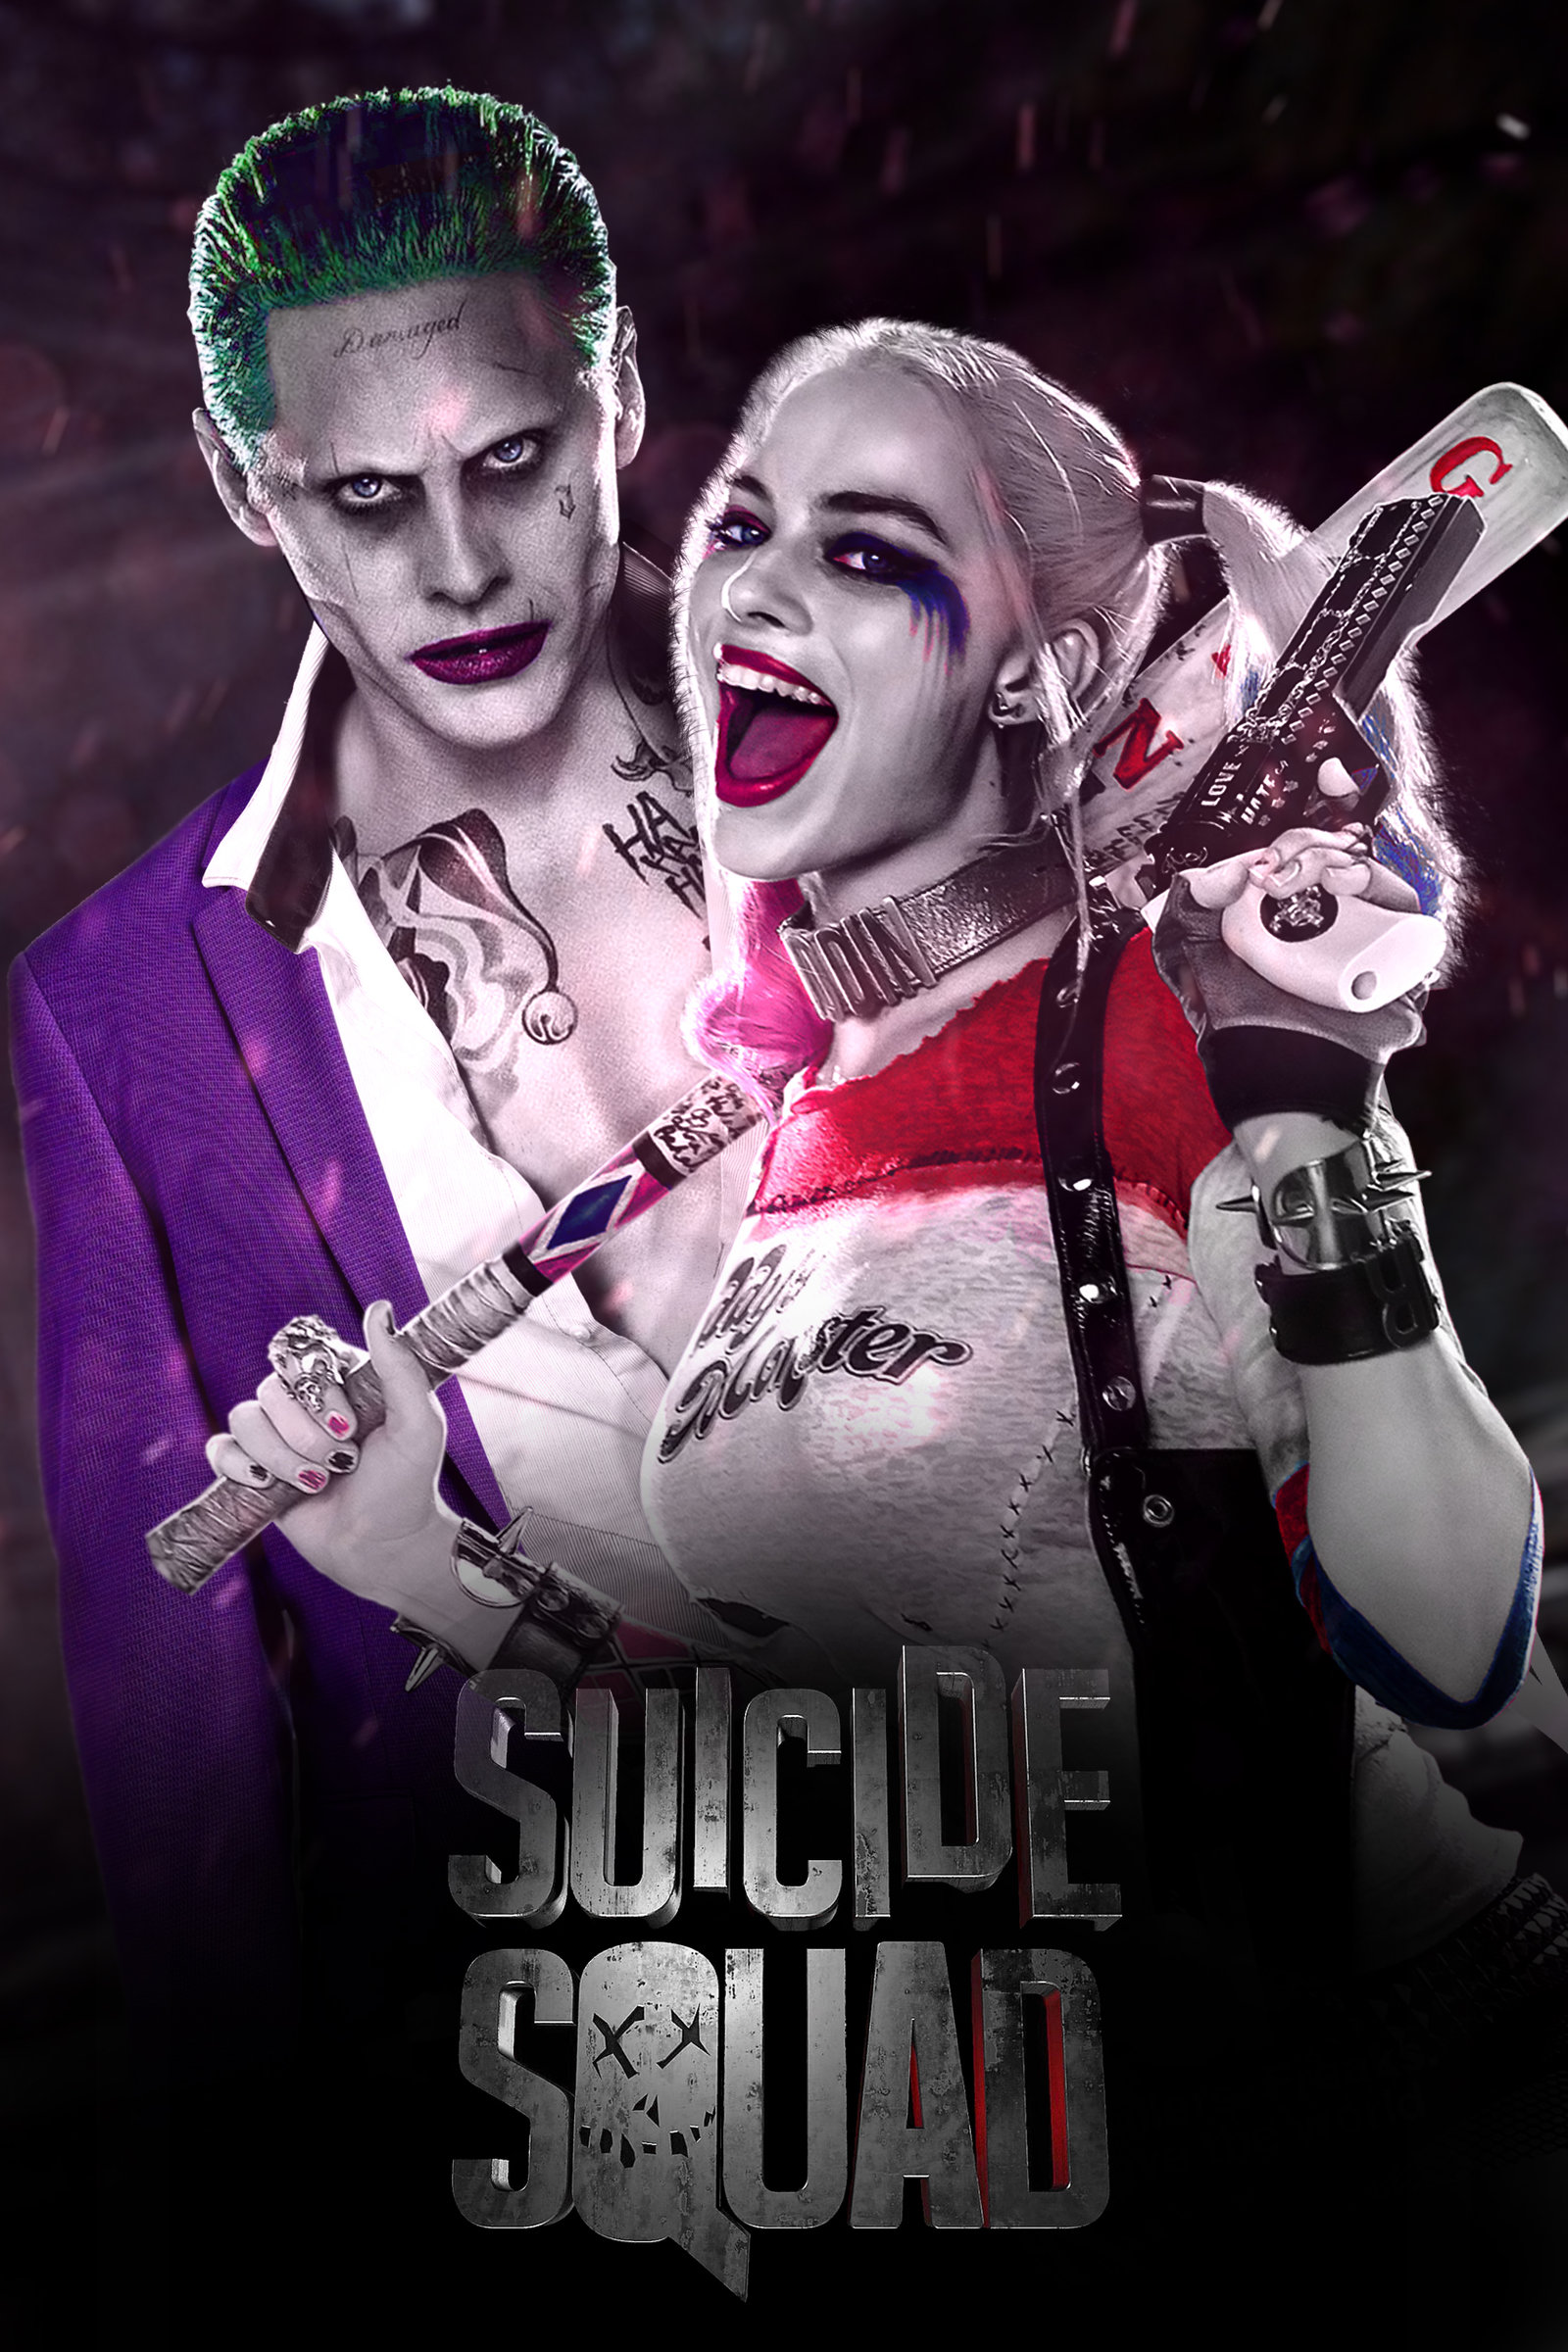 Movie Poster superman the movie poster : Harley Quinn Suicide Squad Wallpapers - WallpaperSafari